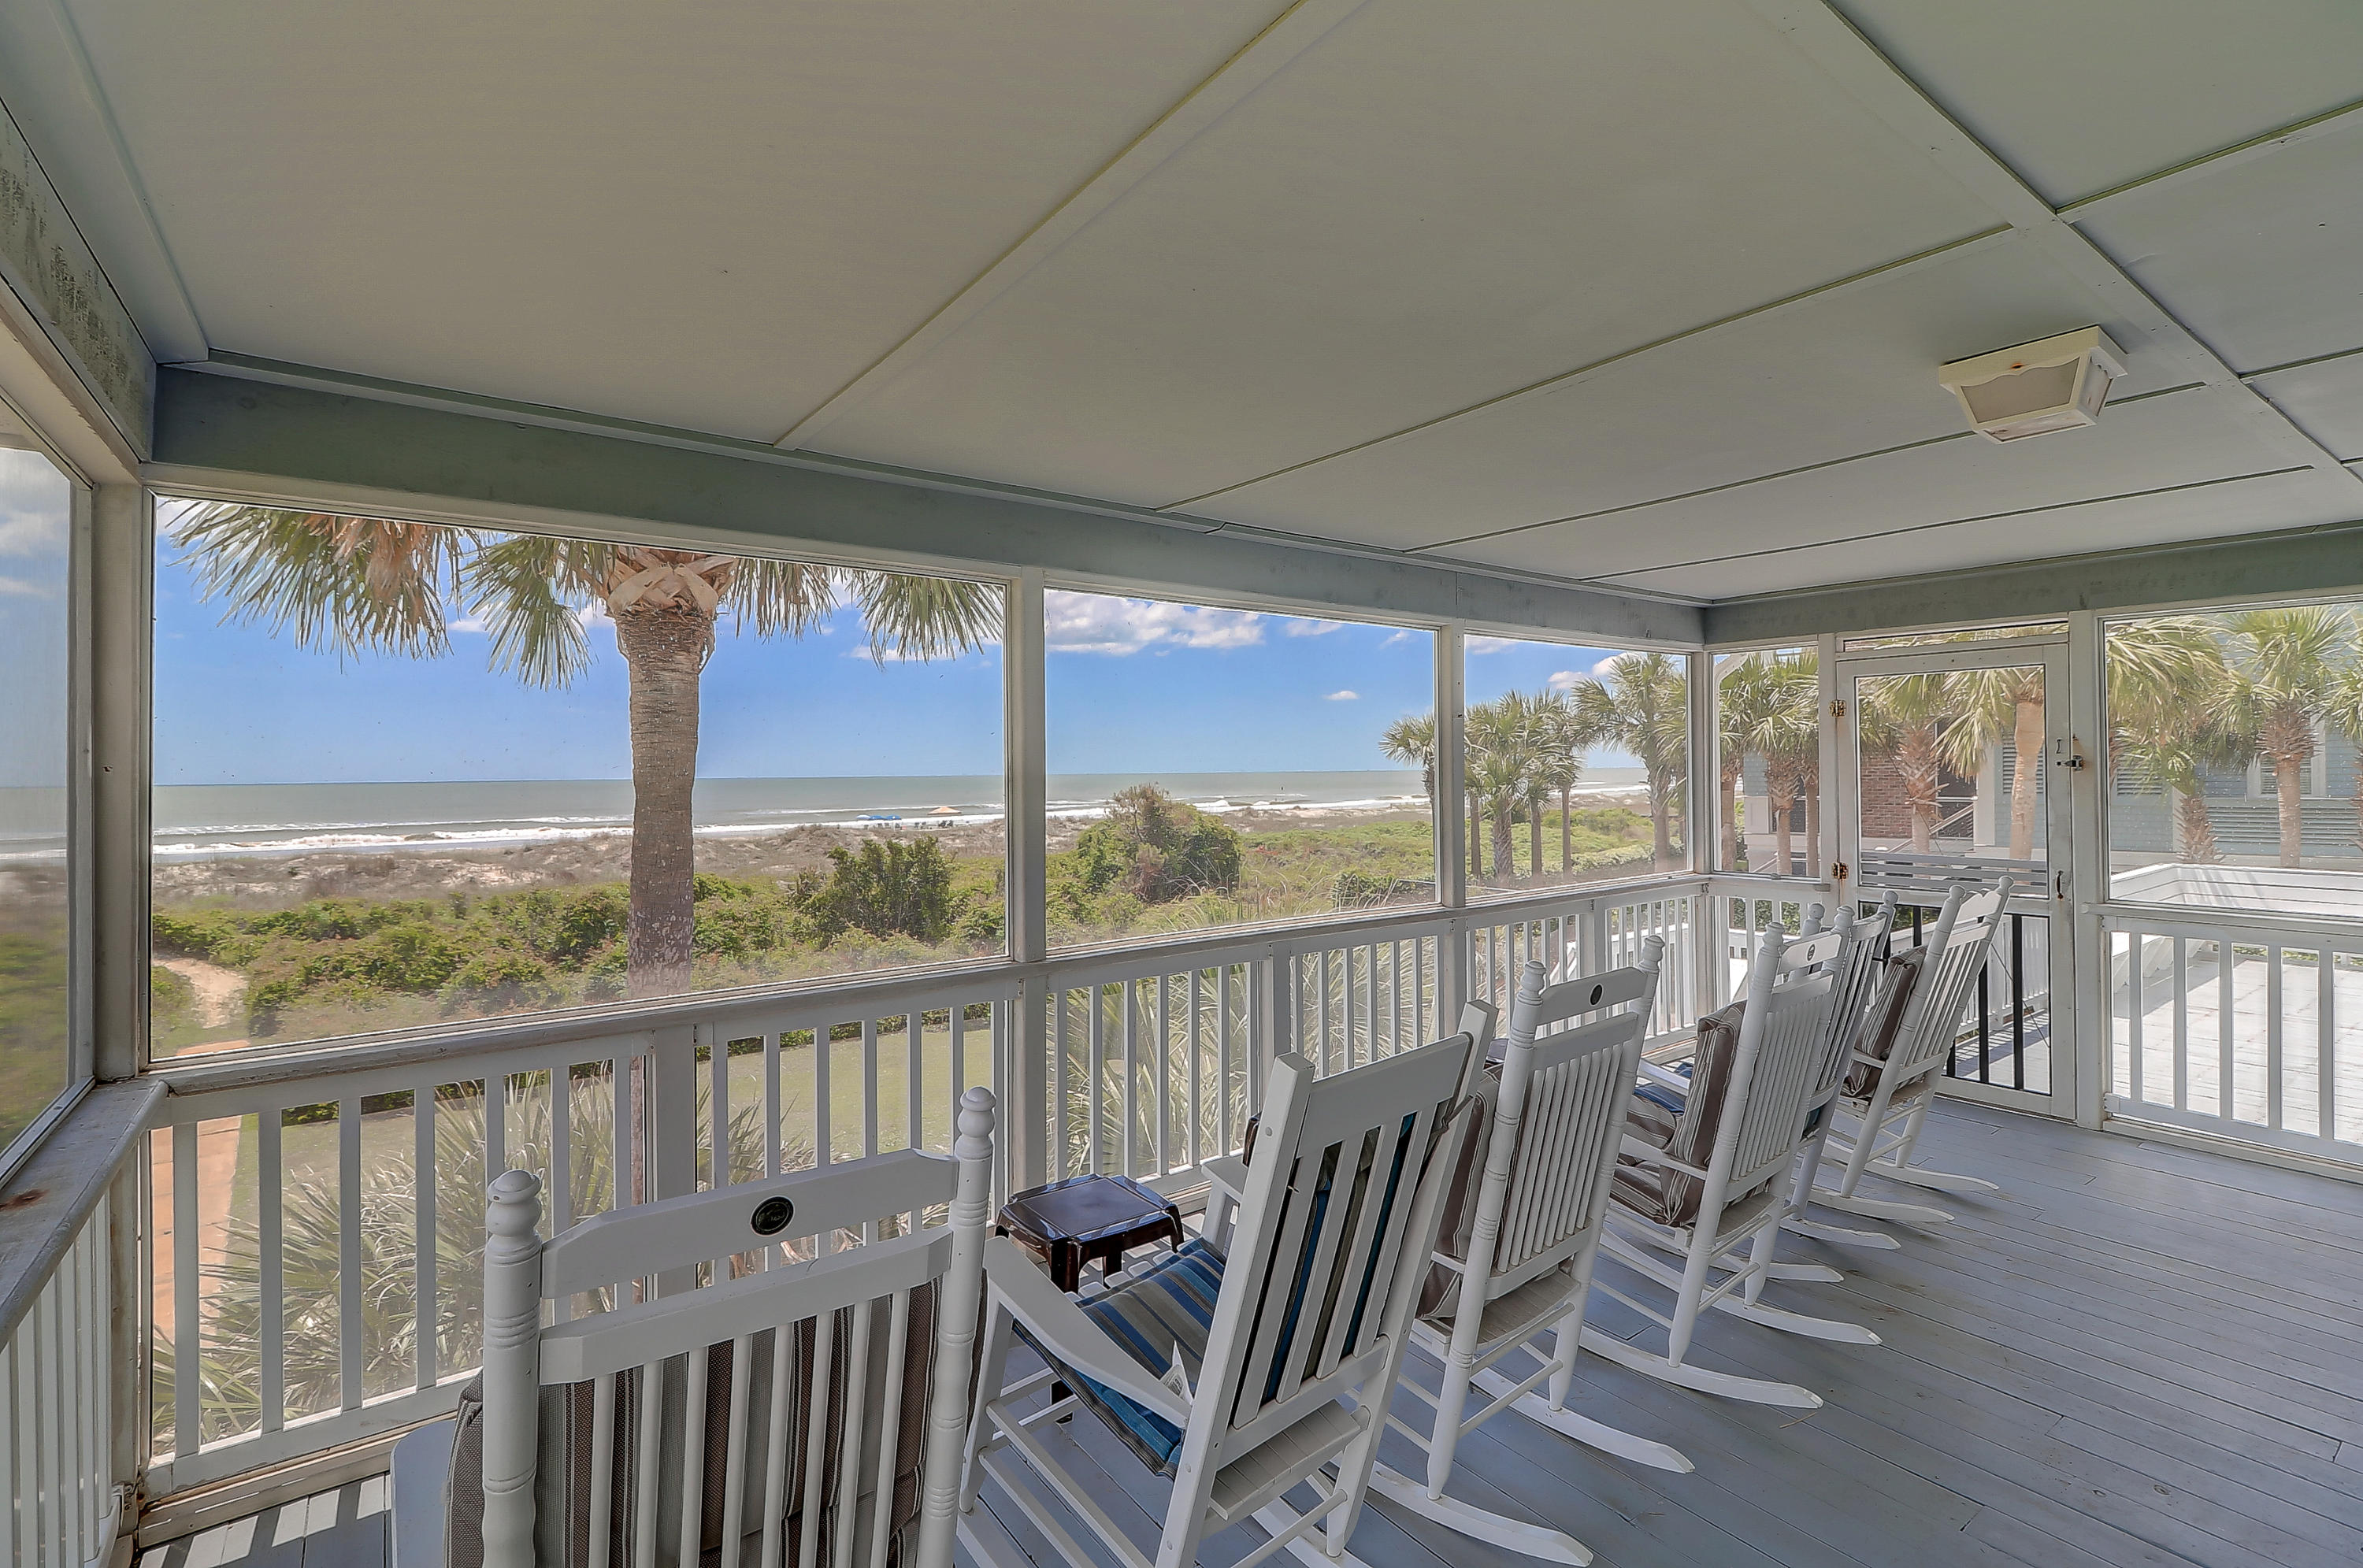 Isle of Palms Homes For Sale - 1 47th (1/13th), Isle of Palms, SC - 23